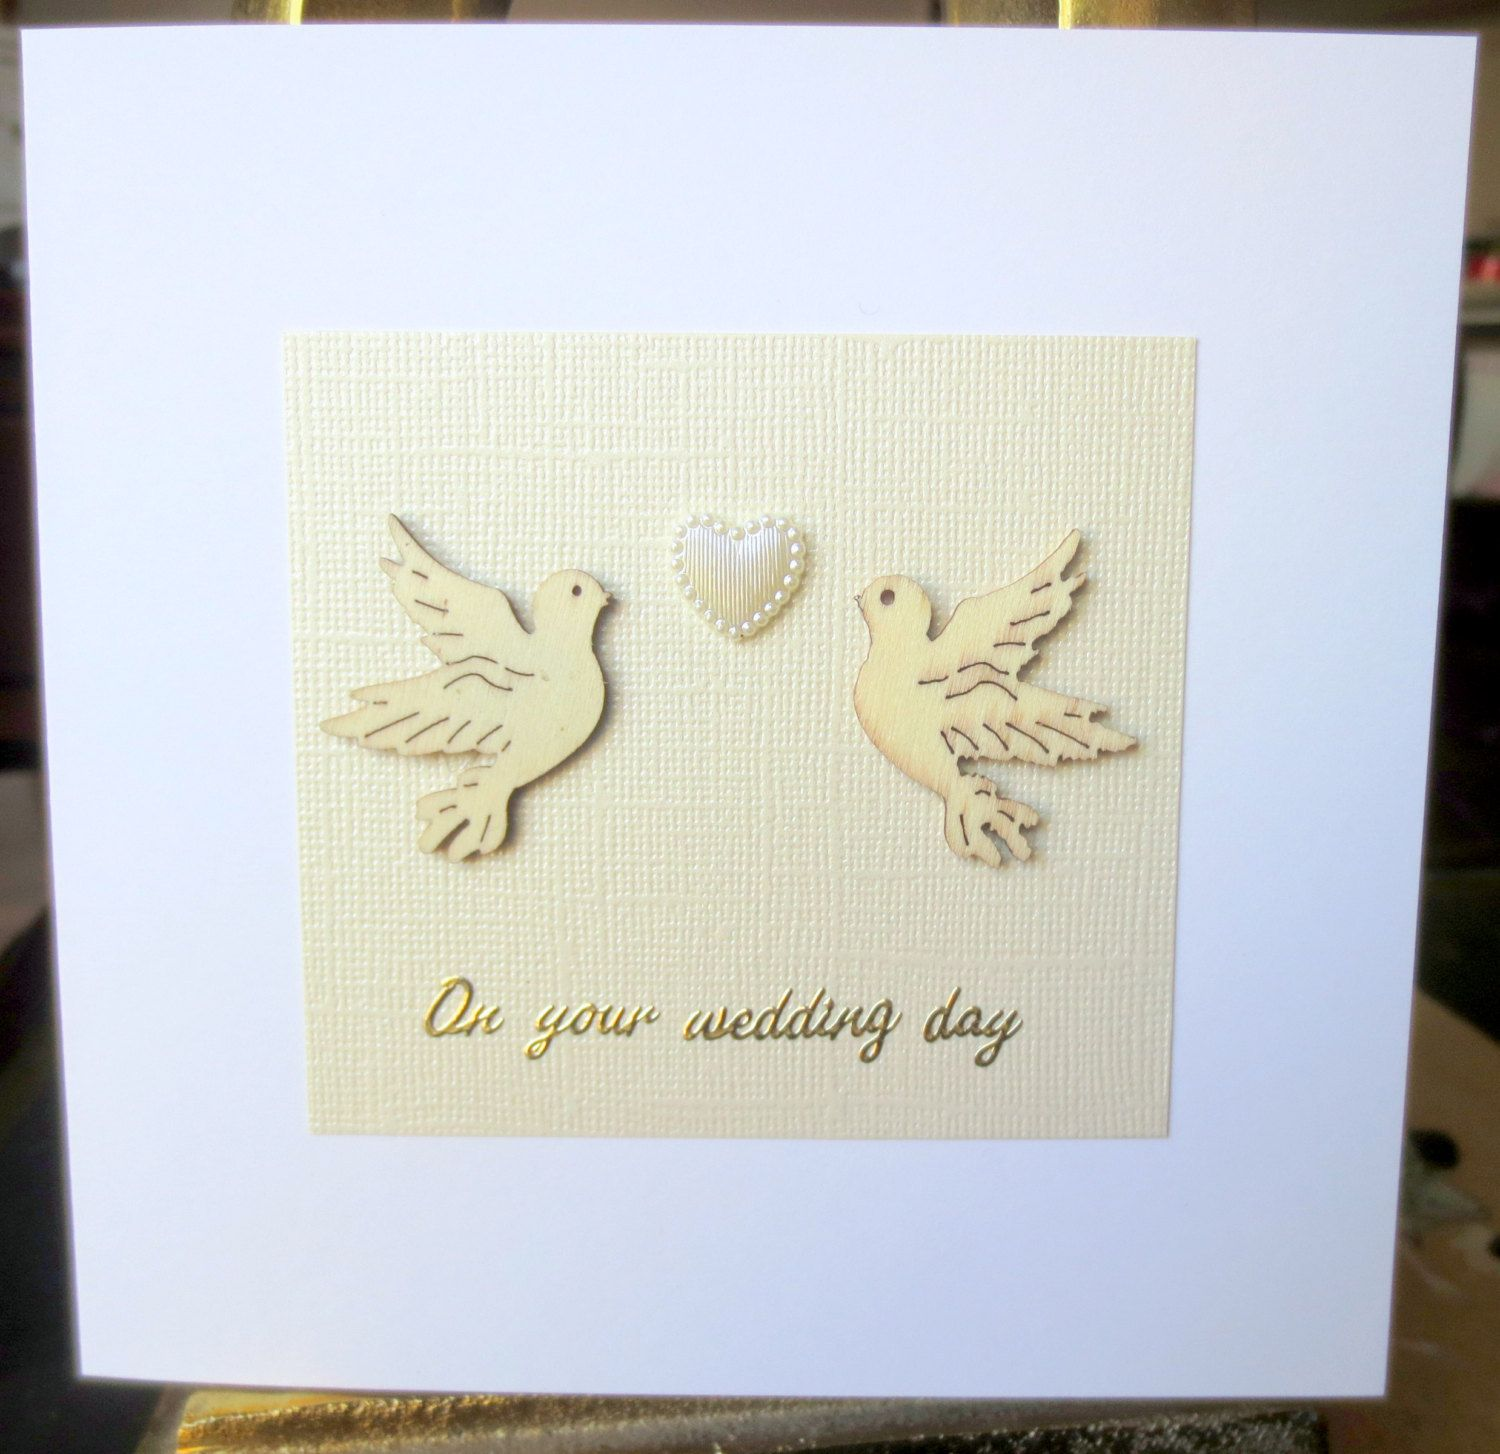 Wedding card love and marriage marriage card congratulations wedding card two wooden lovebirds handmade wedding card on your wedding day engagement kristyandbryce Choice Image